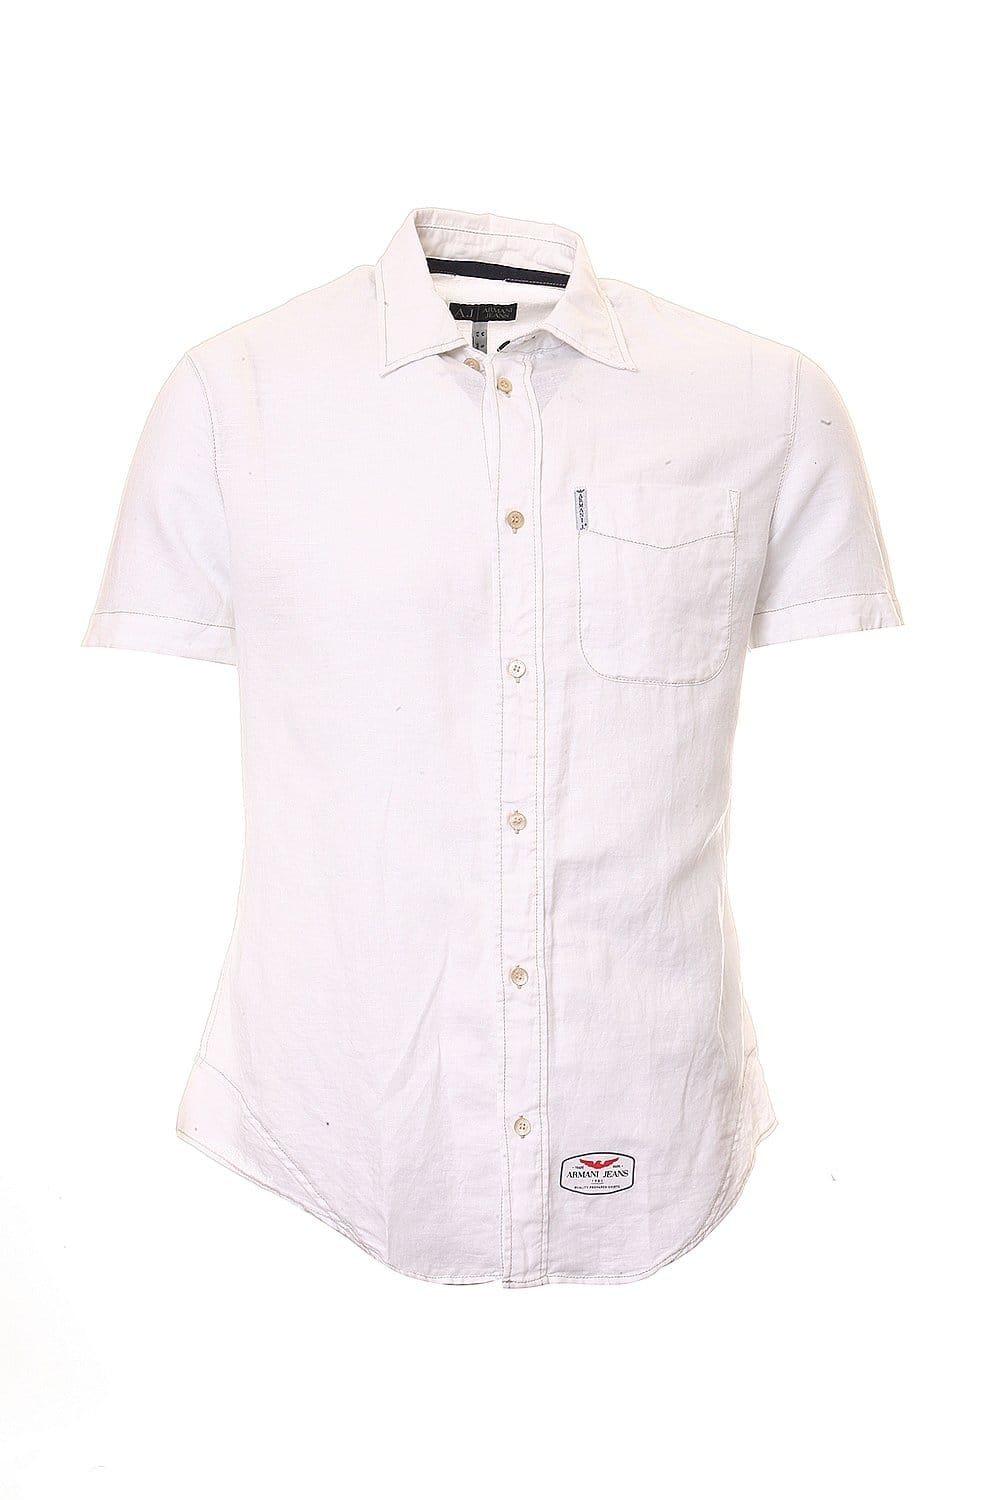 ec2cd7a5 Armani Jeans Short Sleeve Shirt in Pink Blue Black and White T6C47GU ...